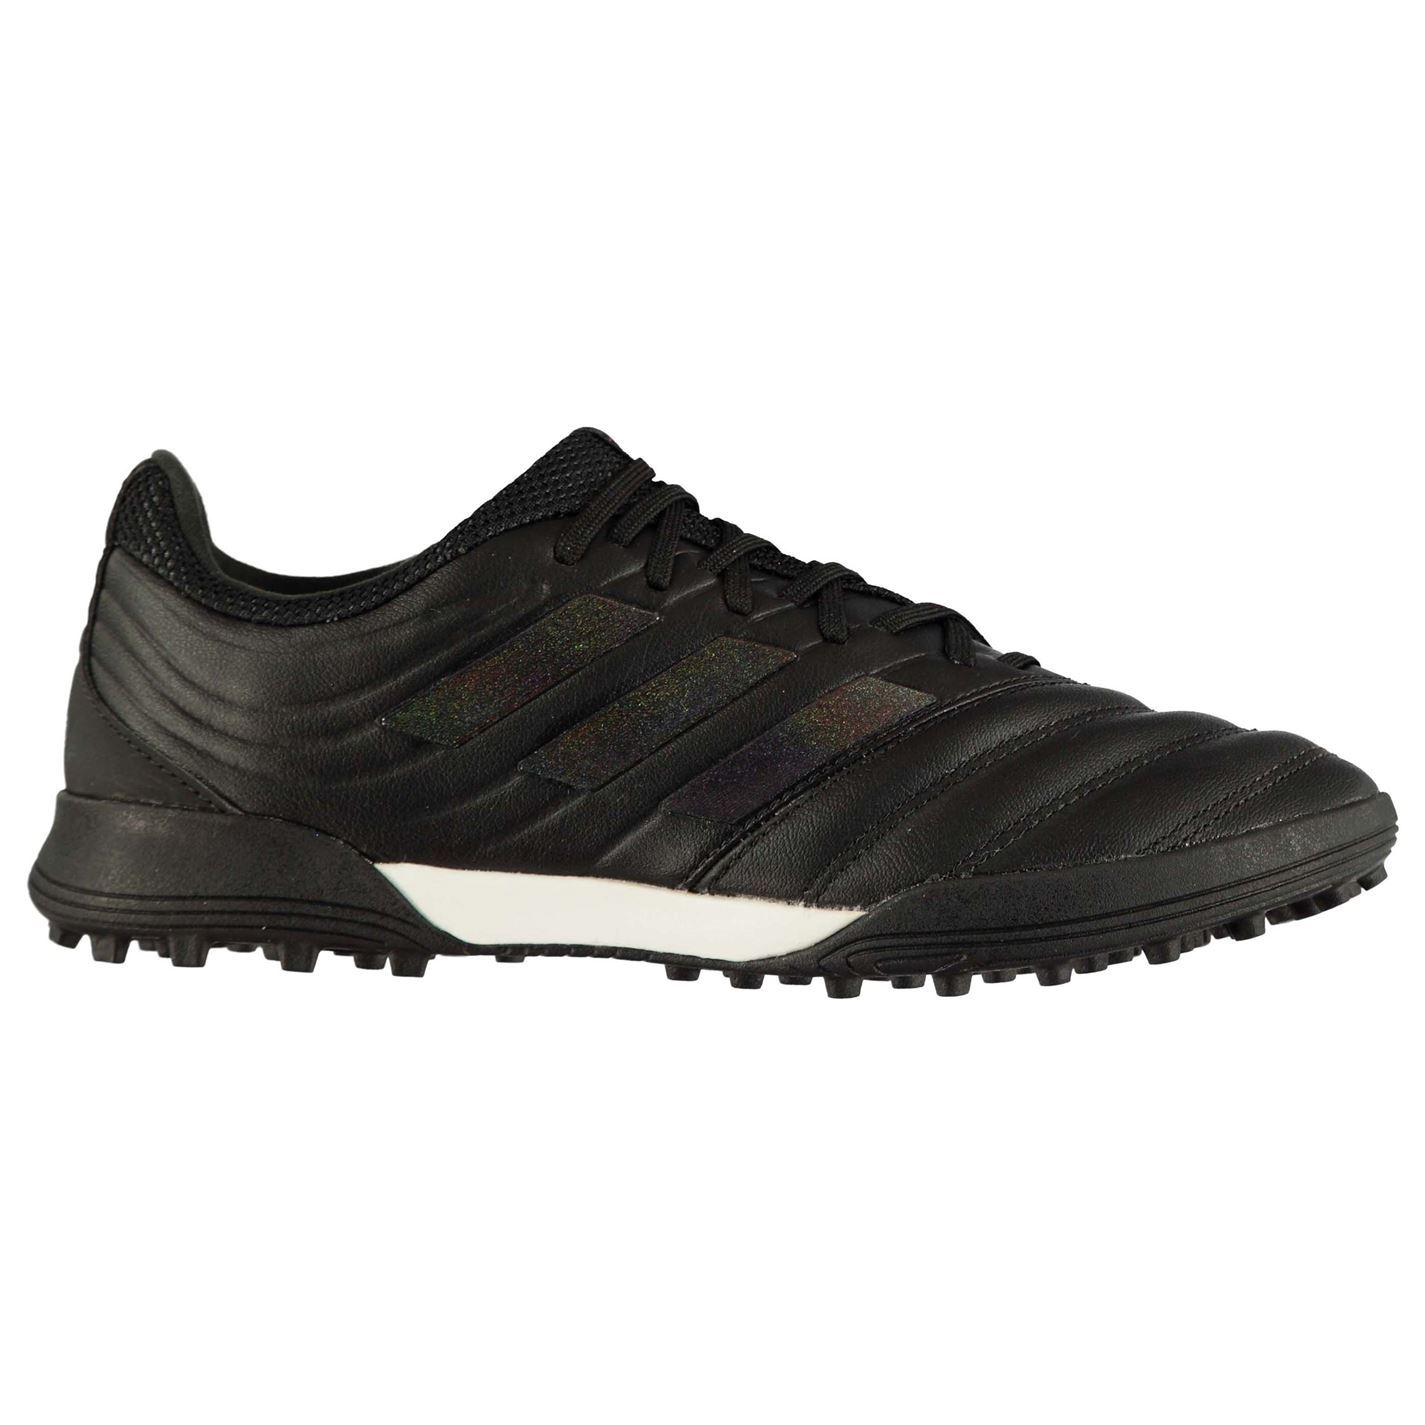 Adidas-Copa-19-3-Astro-Turf-Football-Chaussures-Homme-Football-Entrainement-Baskets miniature 6